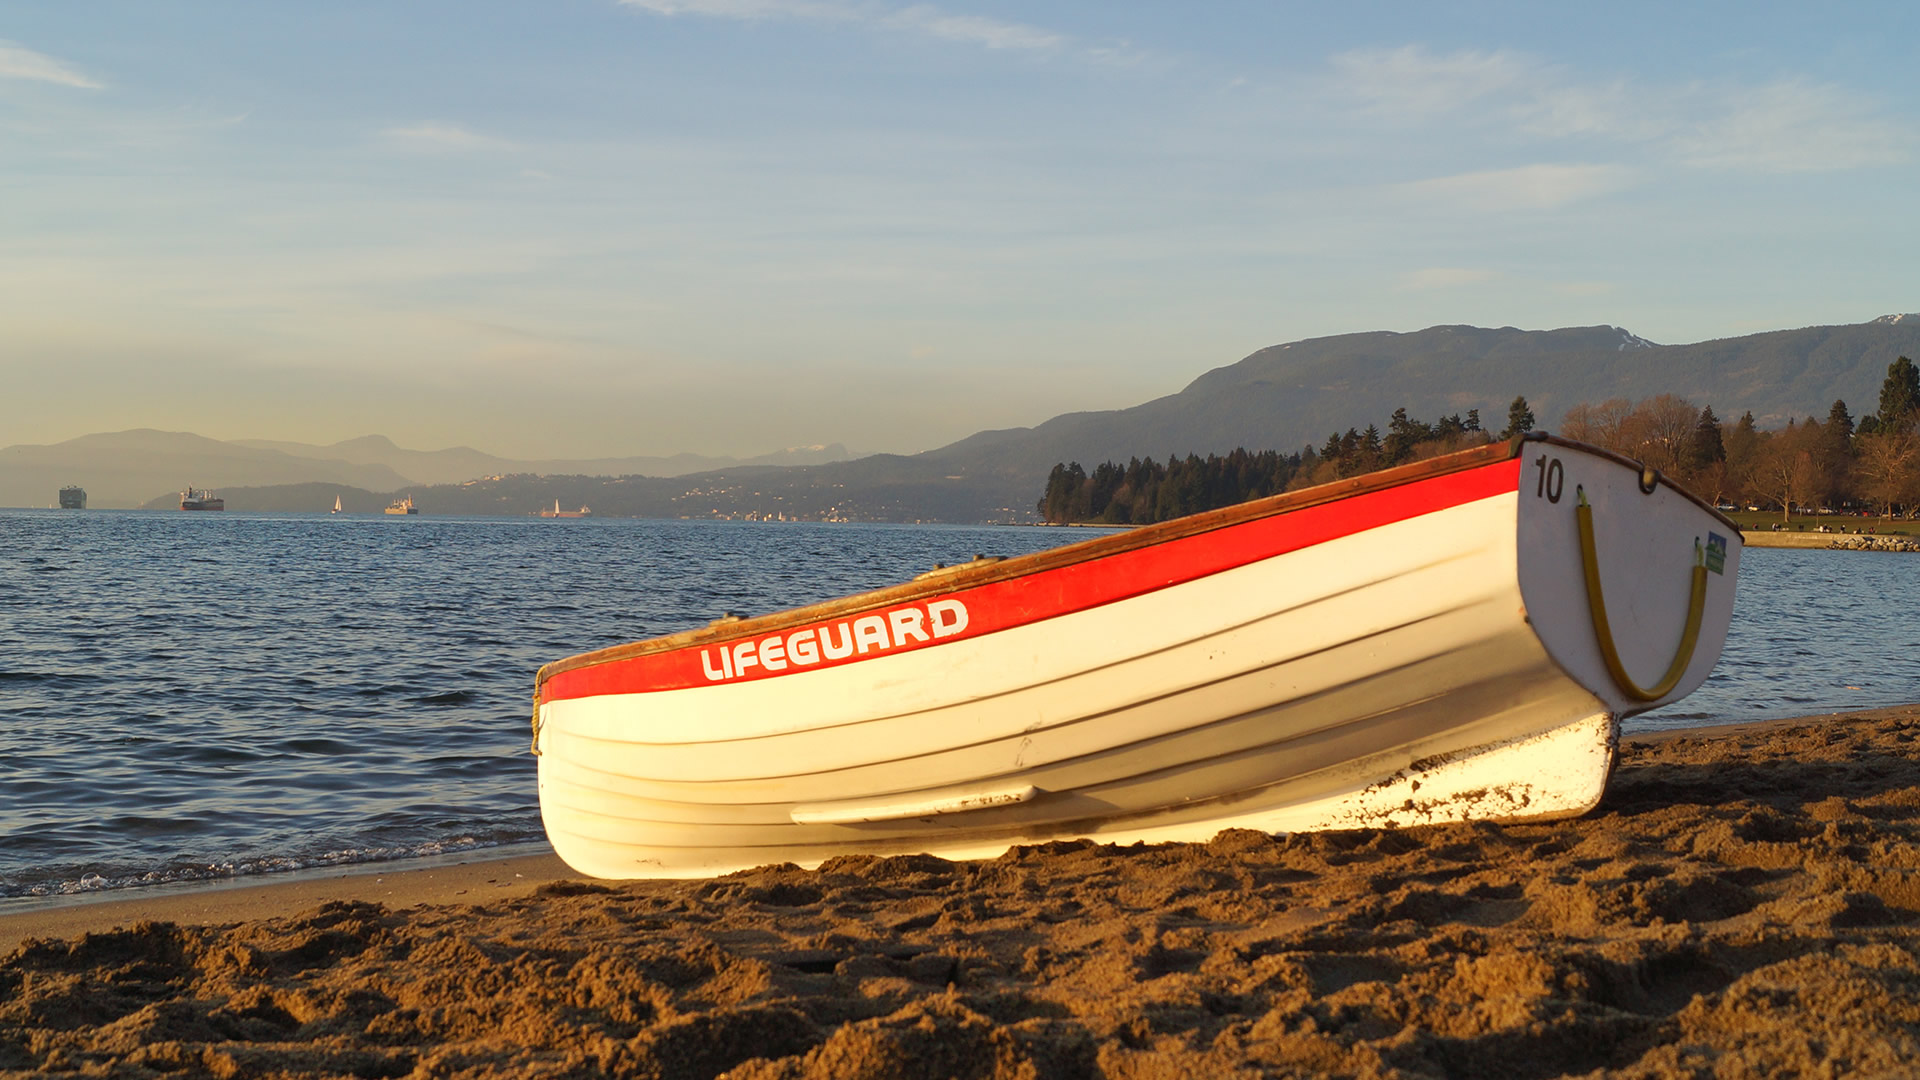 Westcoast-Lifeguard-Rowboat-credit-City-of-Vancouver-Whitehall-Rowing-and-Sail-1a